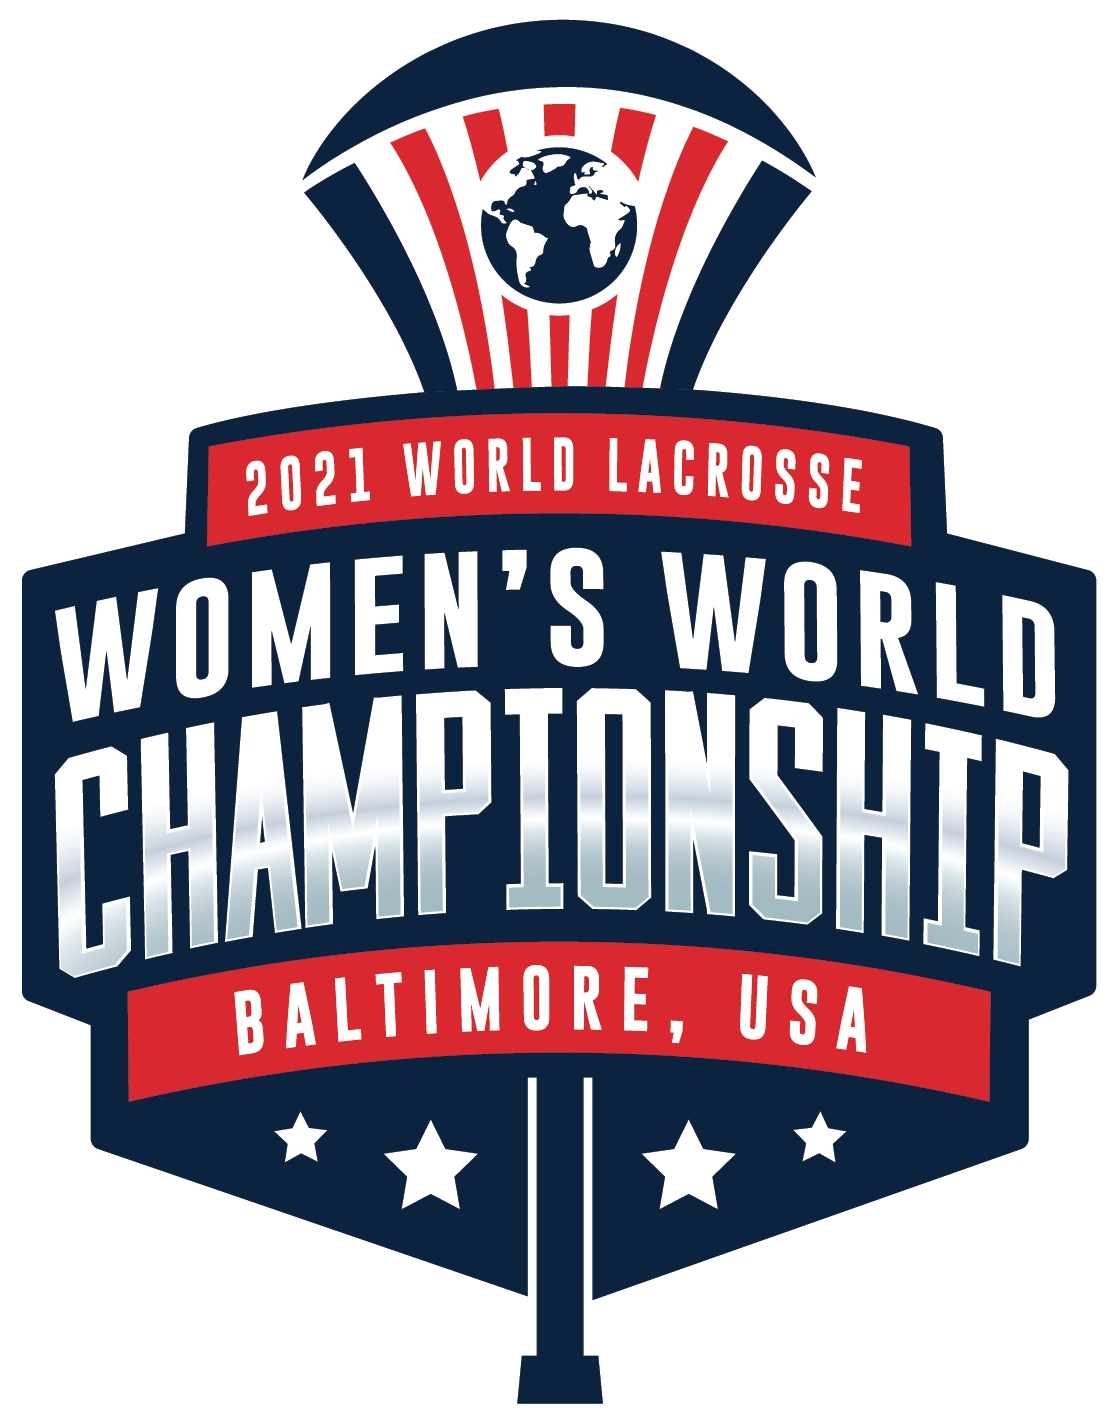 2021 World Lacrosse Women's World Championship